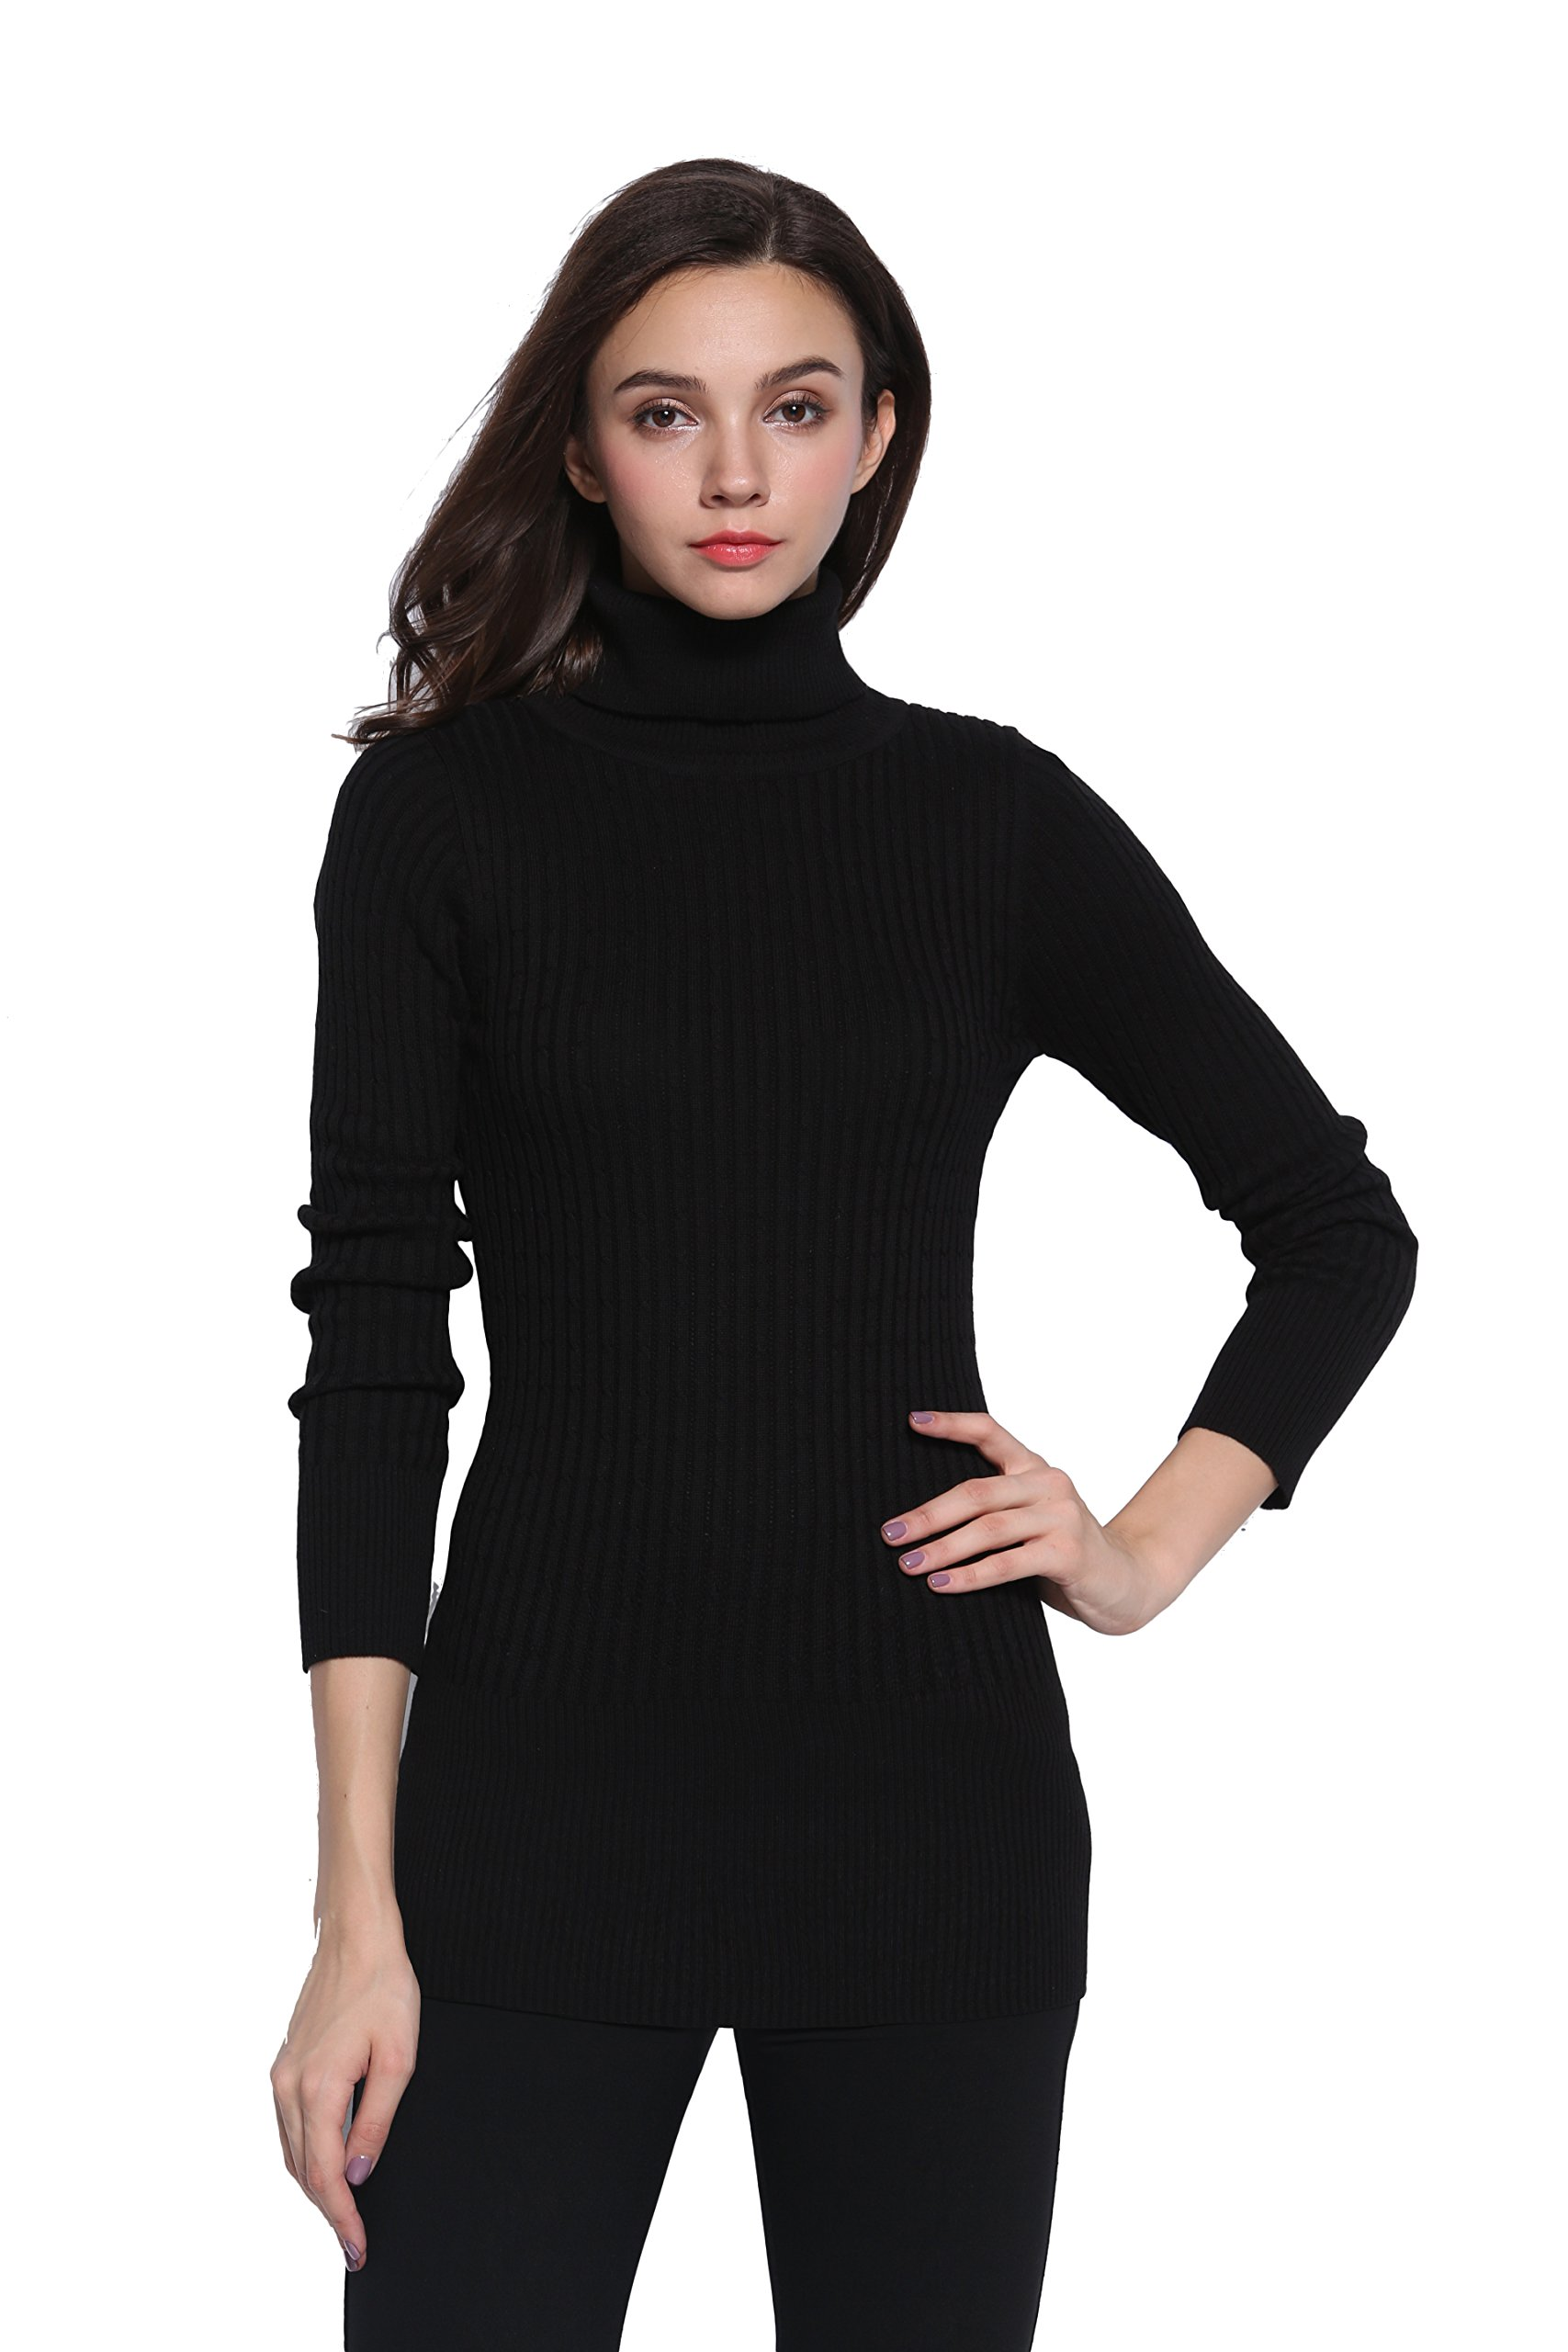 Cable Knit Turtleneck Sweater Amazon